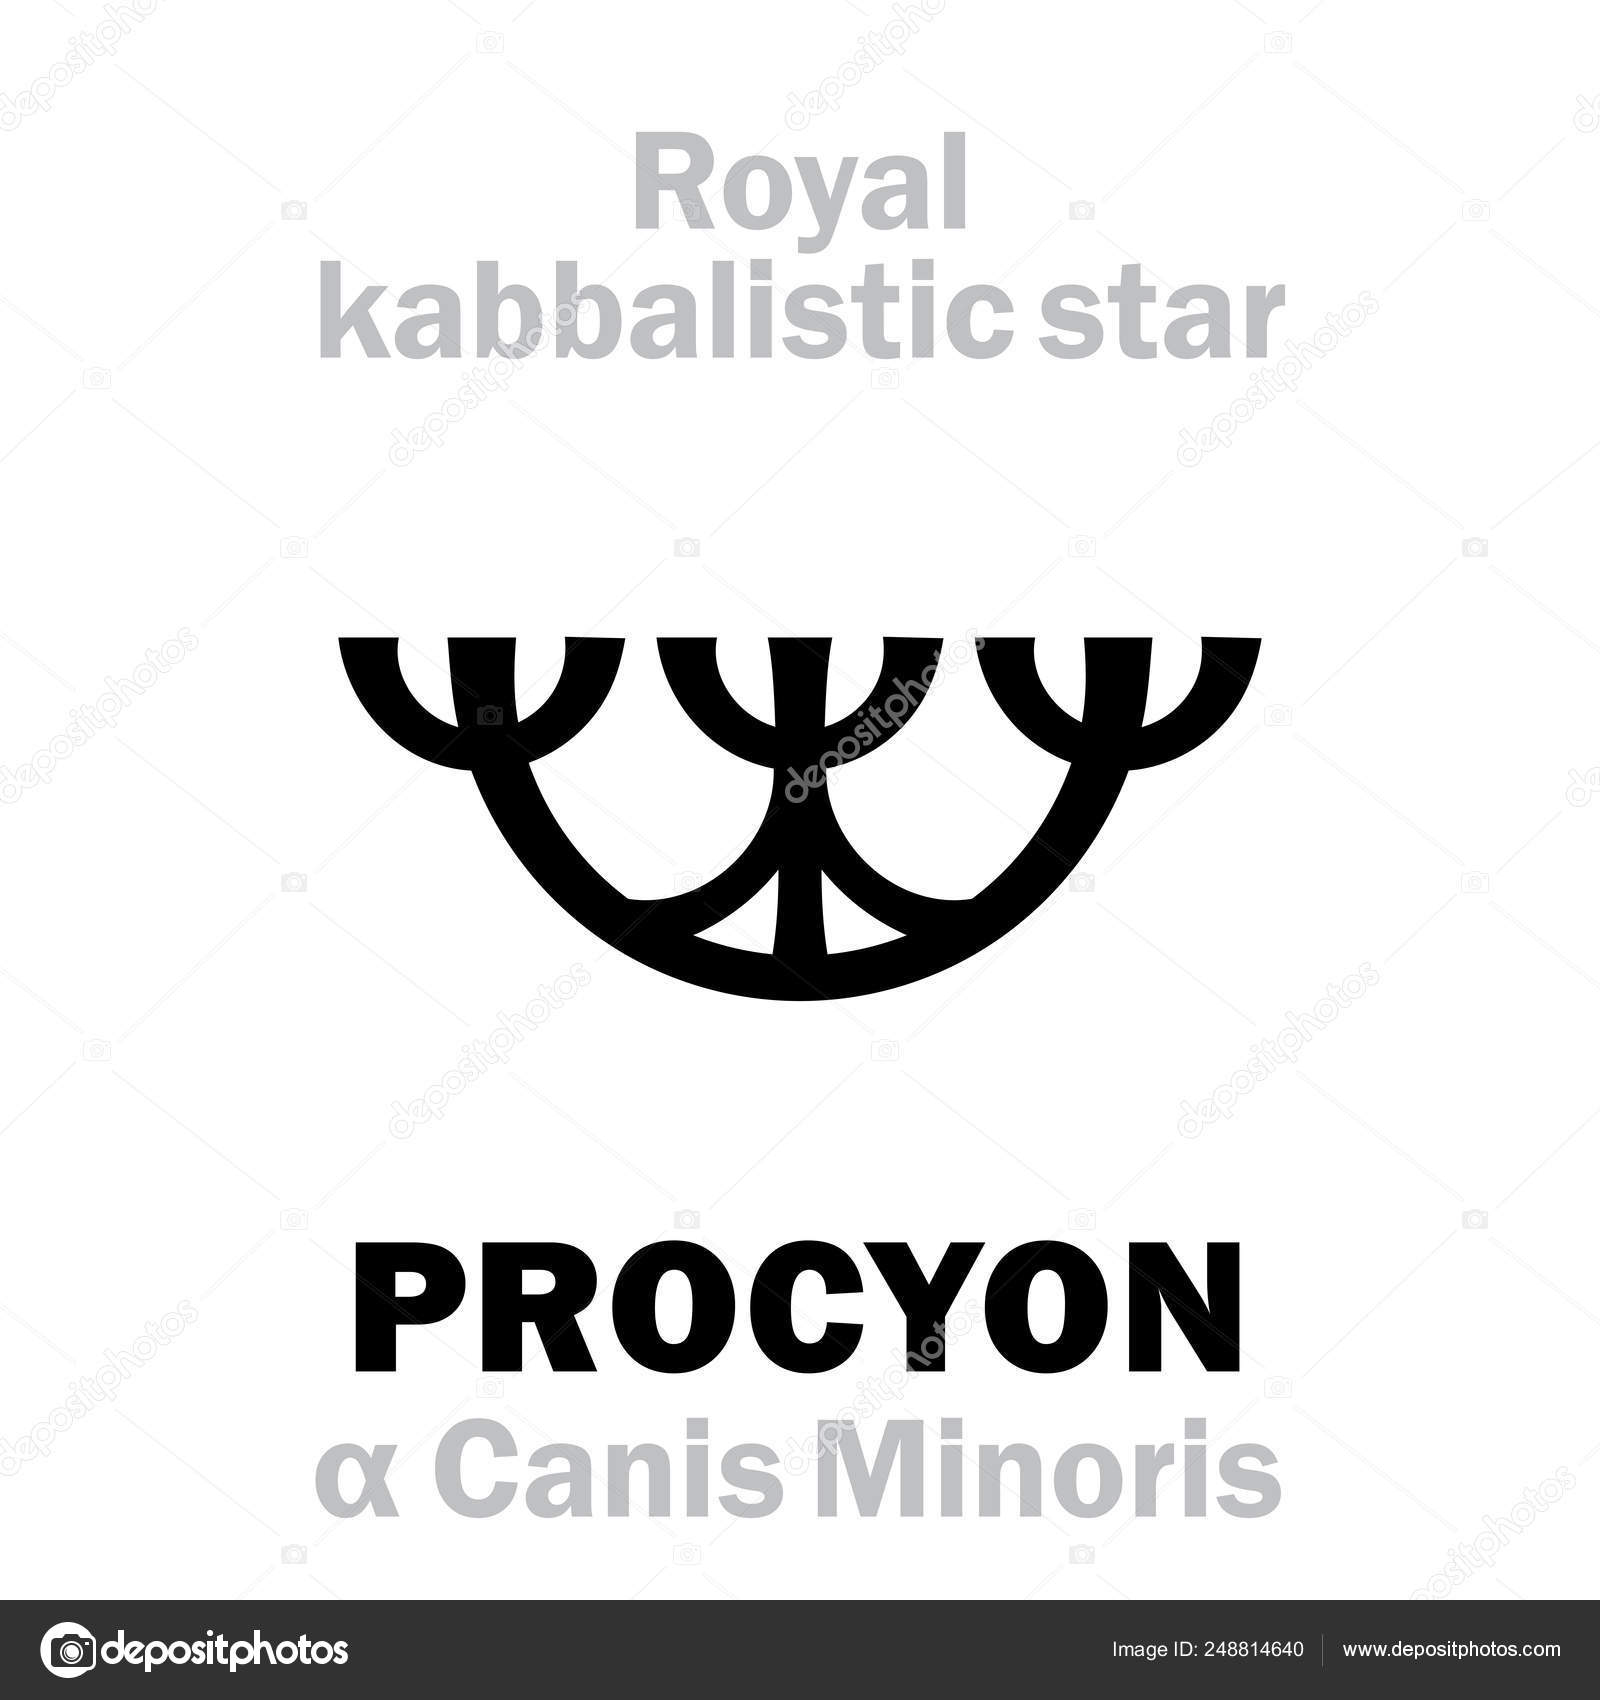 Astrology: PROCYON (The Royal Behenian kabbalistic star